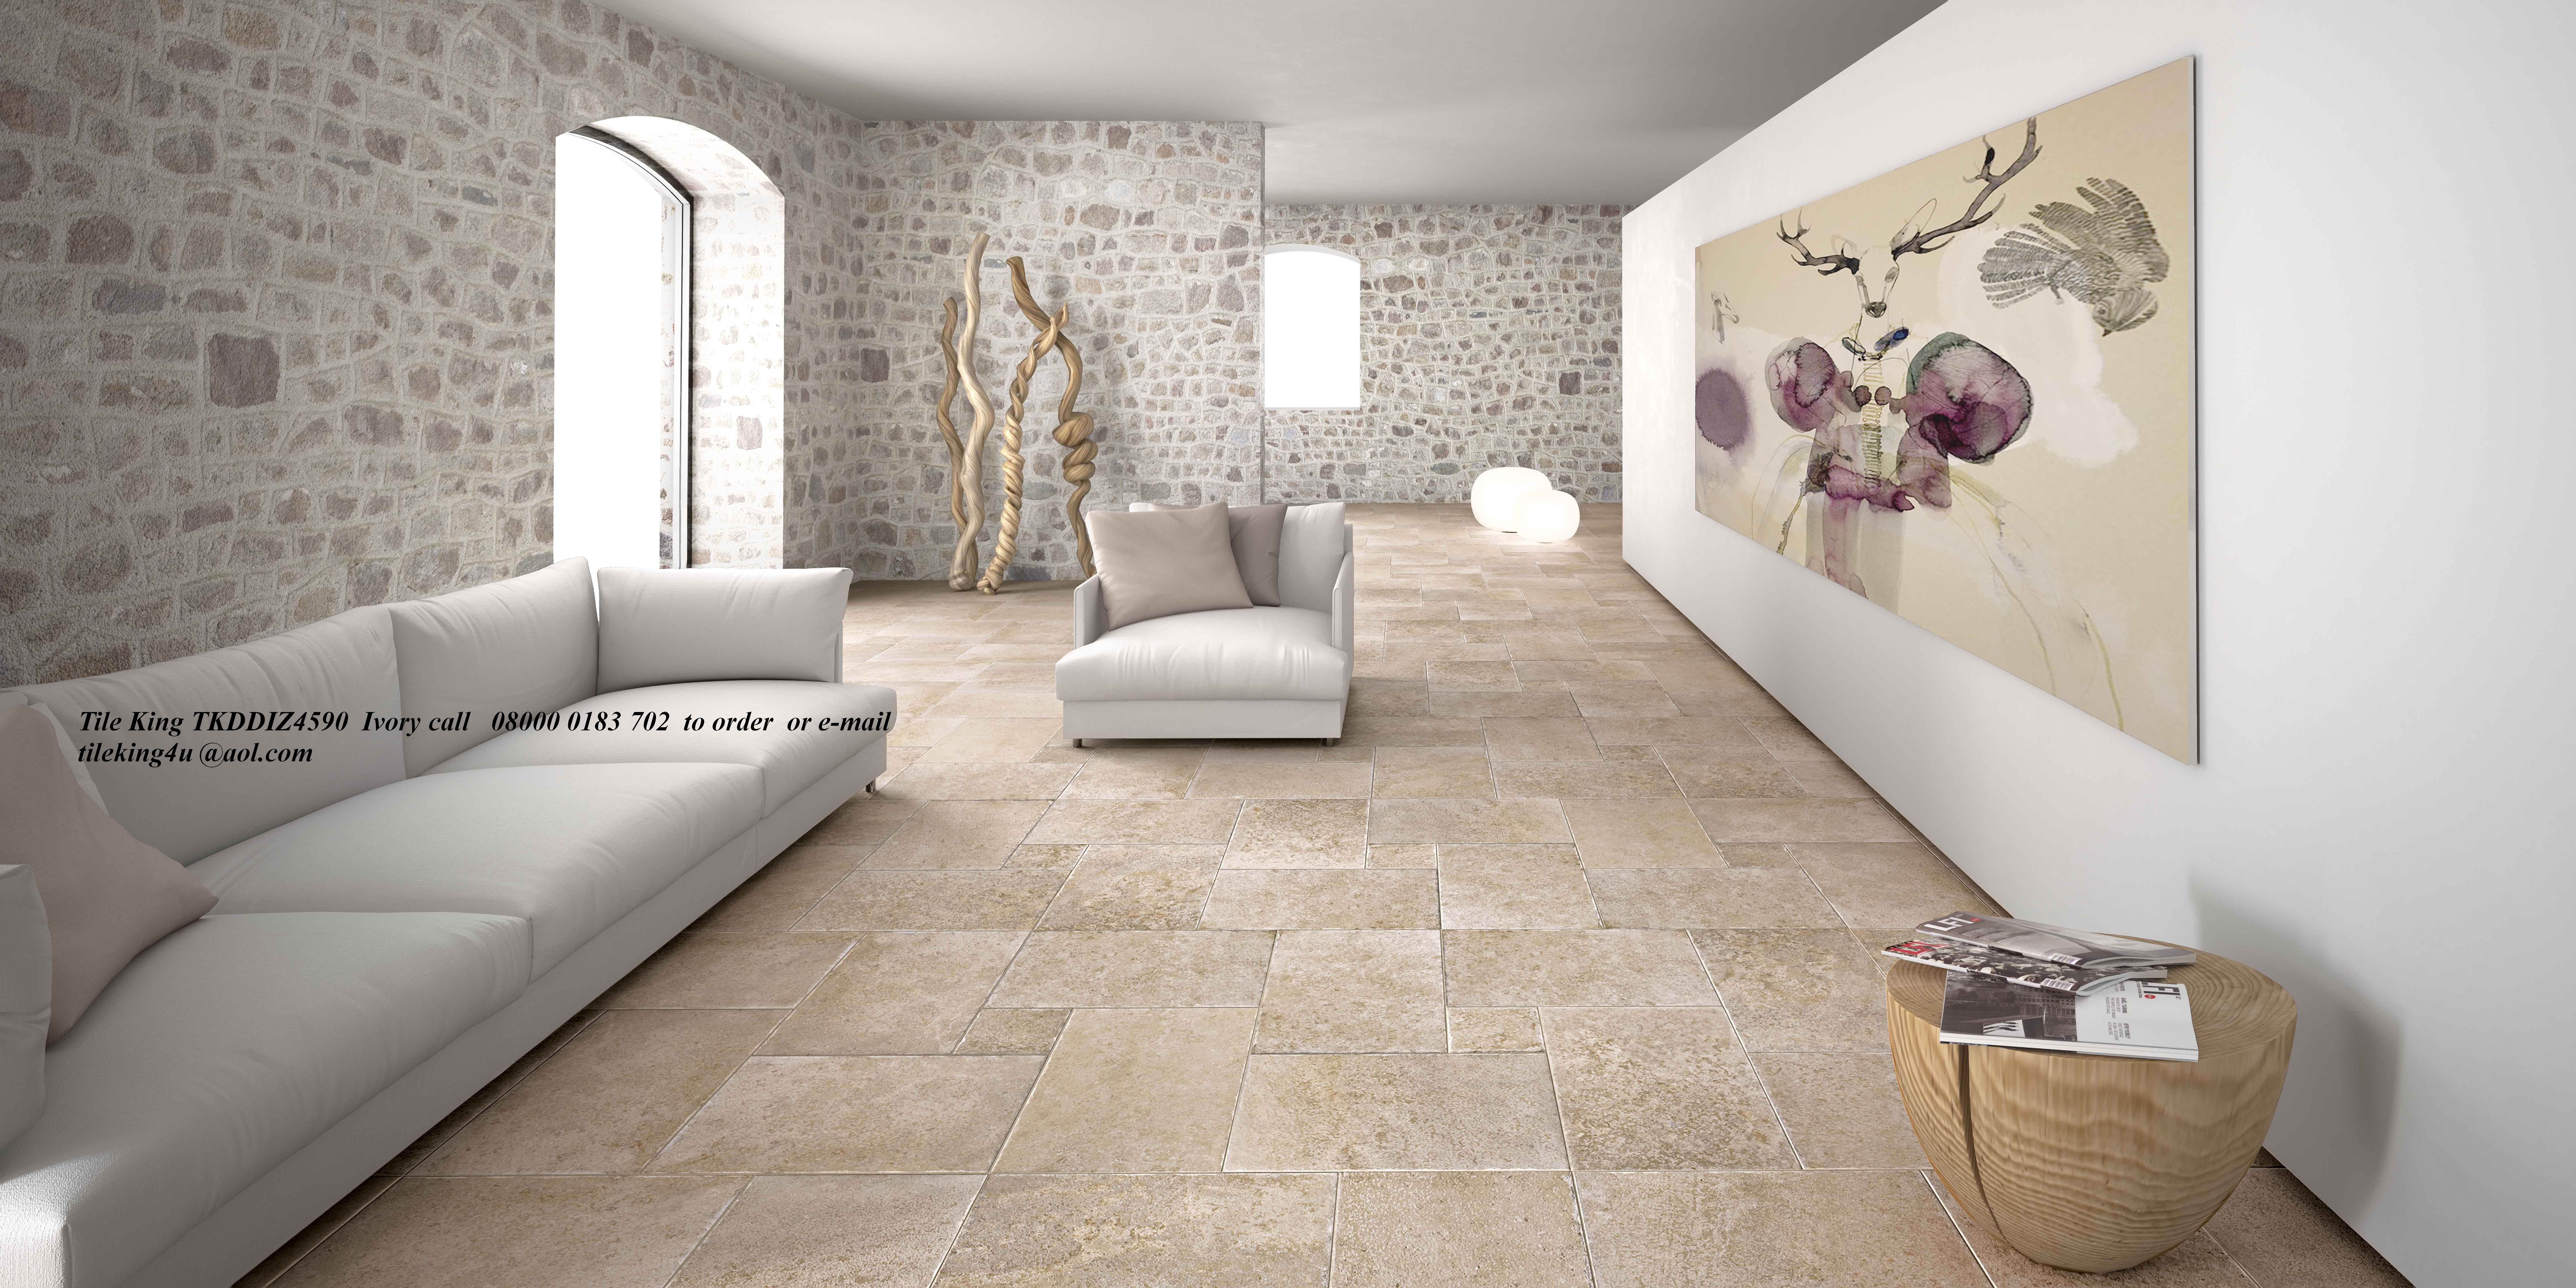 Large floor tiles uk choice image tile flooring design ideas large floor tiles uk gallery tile flooring design ideas large floor tiles image collections home flooring doublecrazyfo Image collections